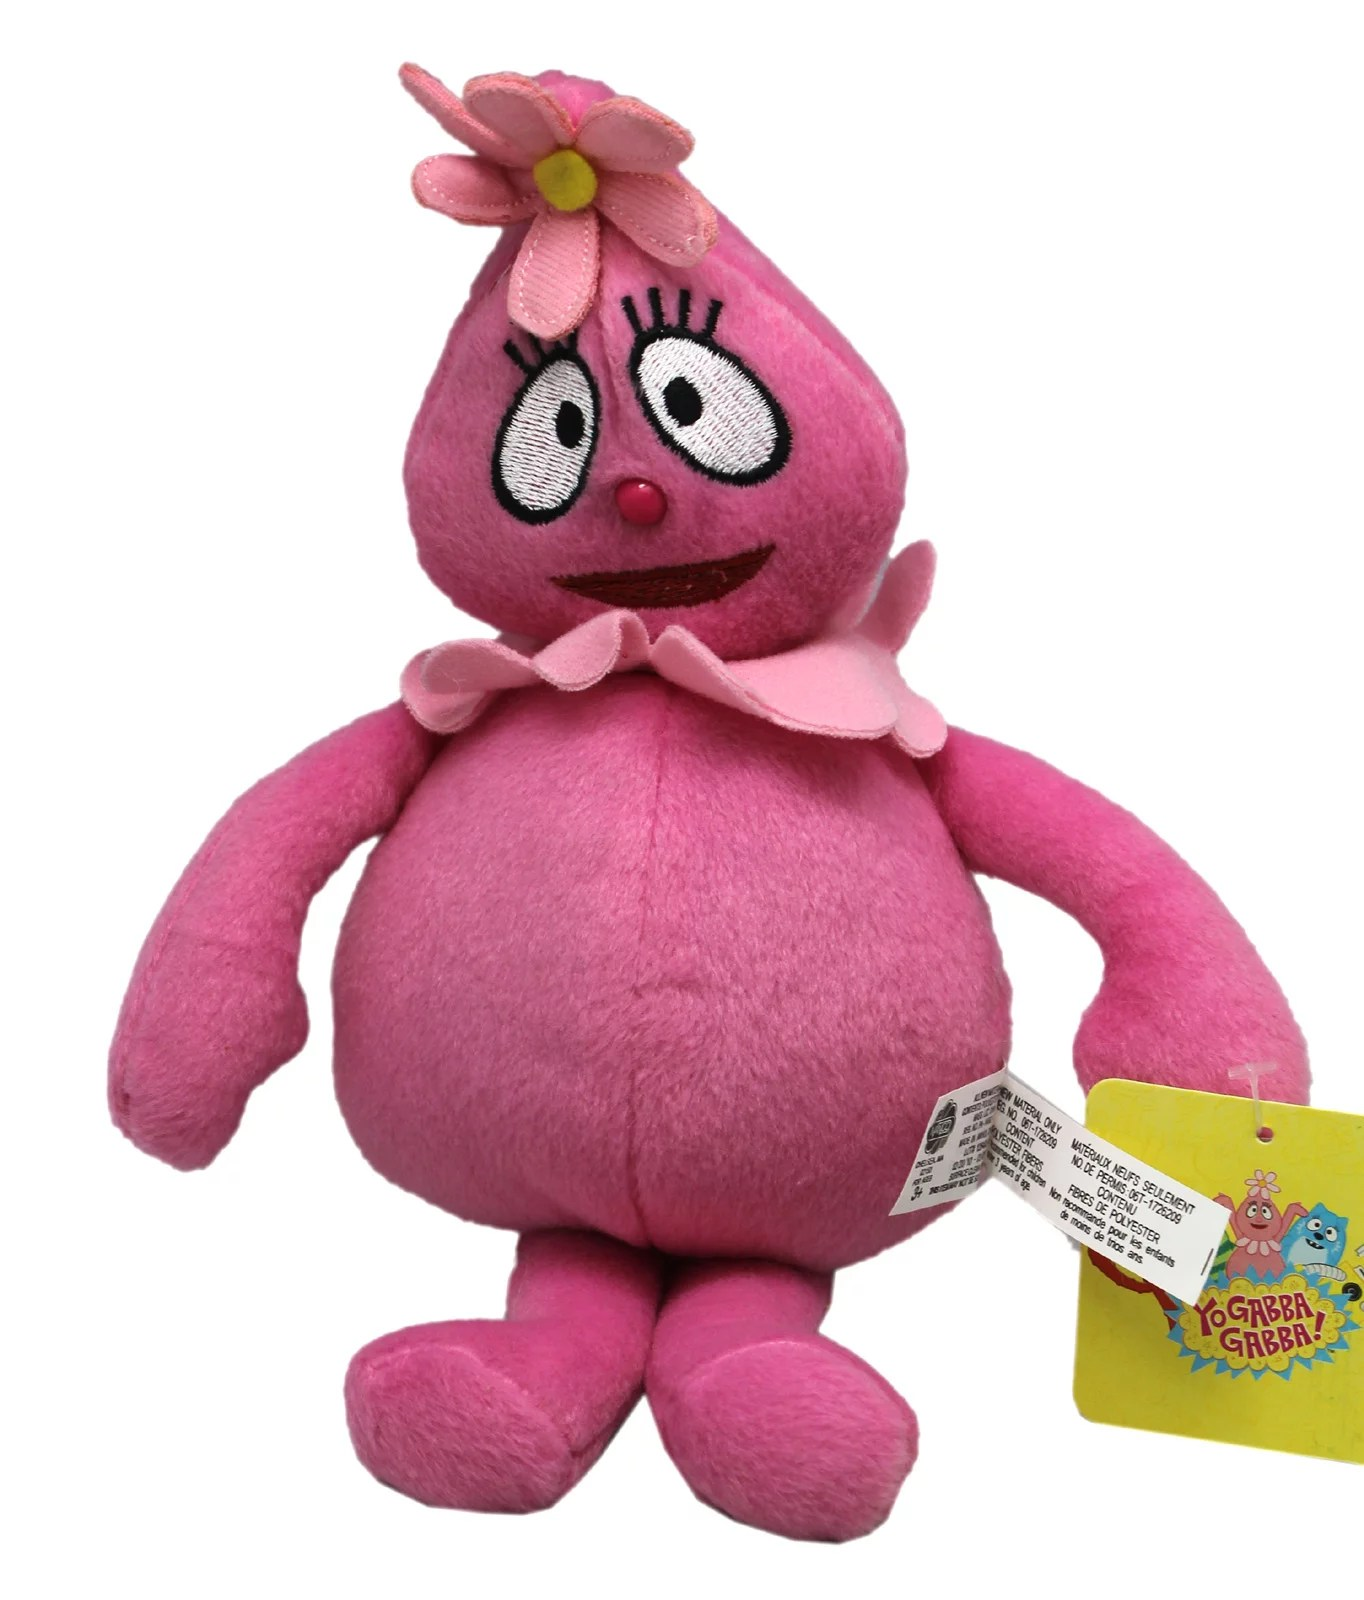 Yo Gabba Gabba Foofa Pink Colored Small Size Kids Plush